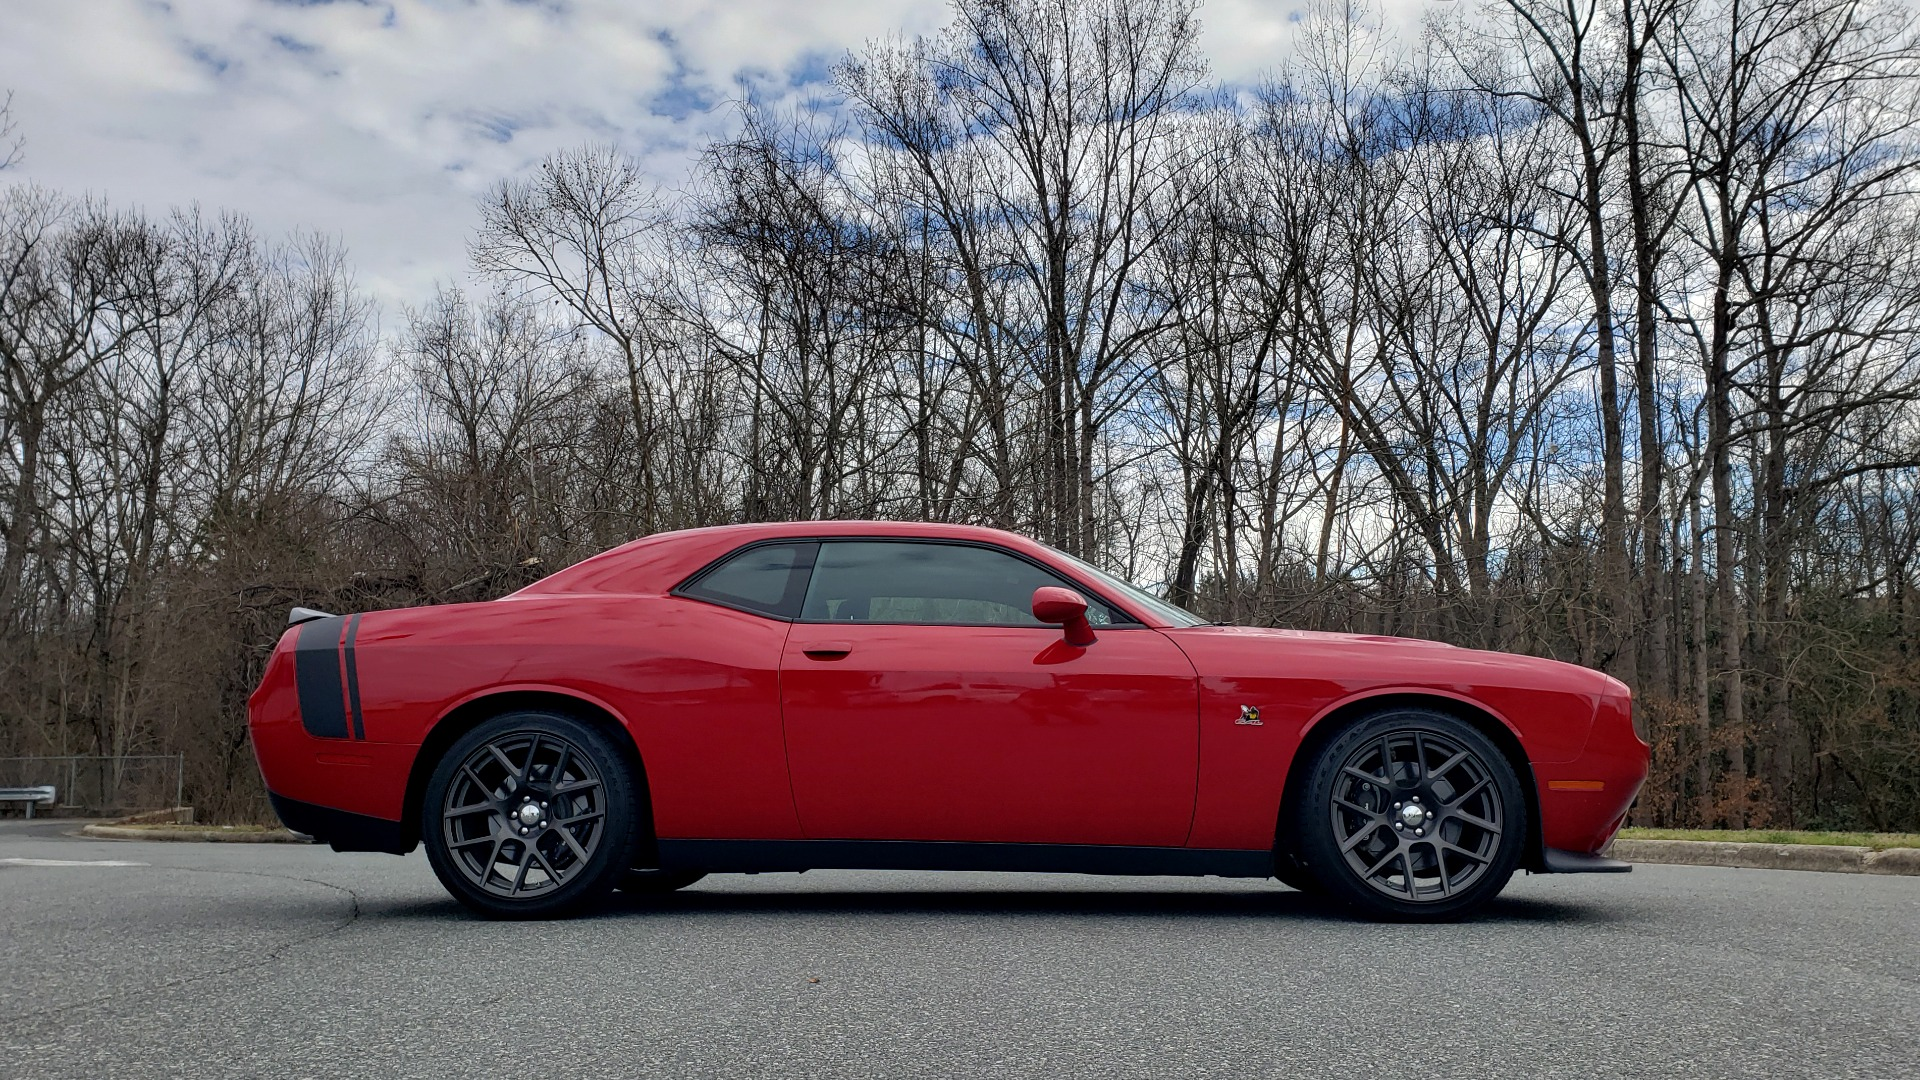 Used 2016 Dodge CHALLENGER R/T SCAT PACK / TECHNOLOGY / ALPINE / 6-SPEED MAN for sale Sold at Formula Imports in Charlotte NC 28227 6